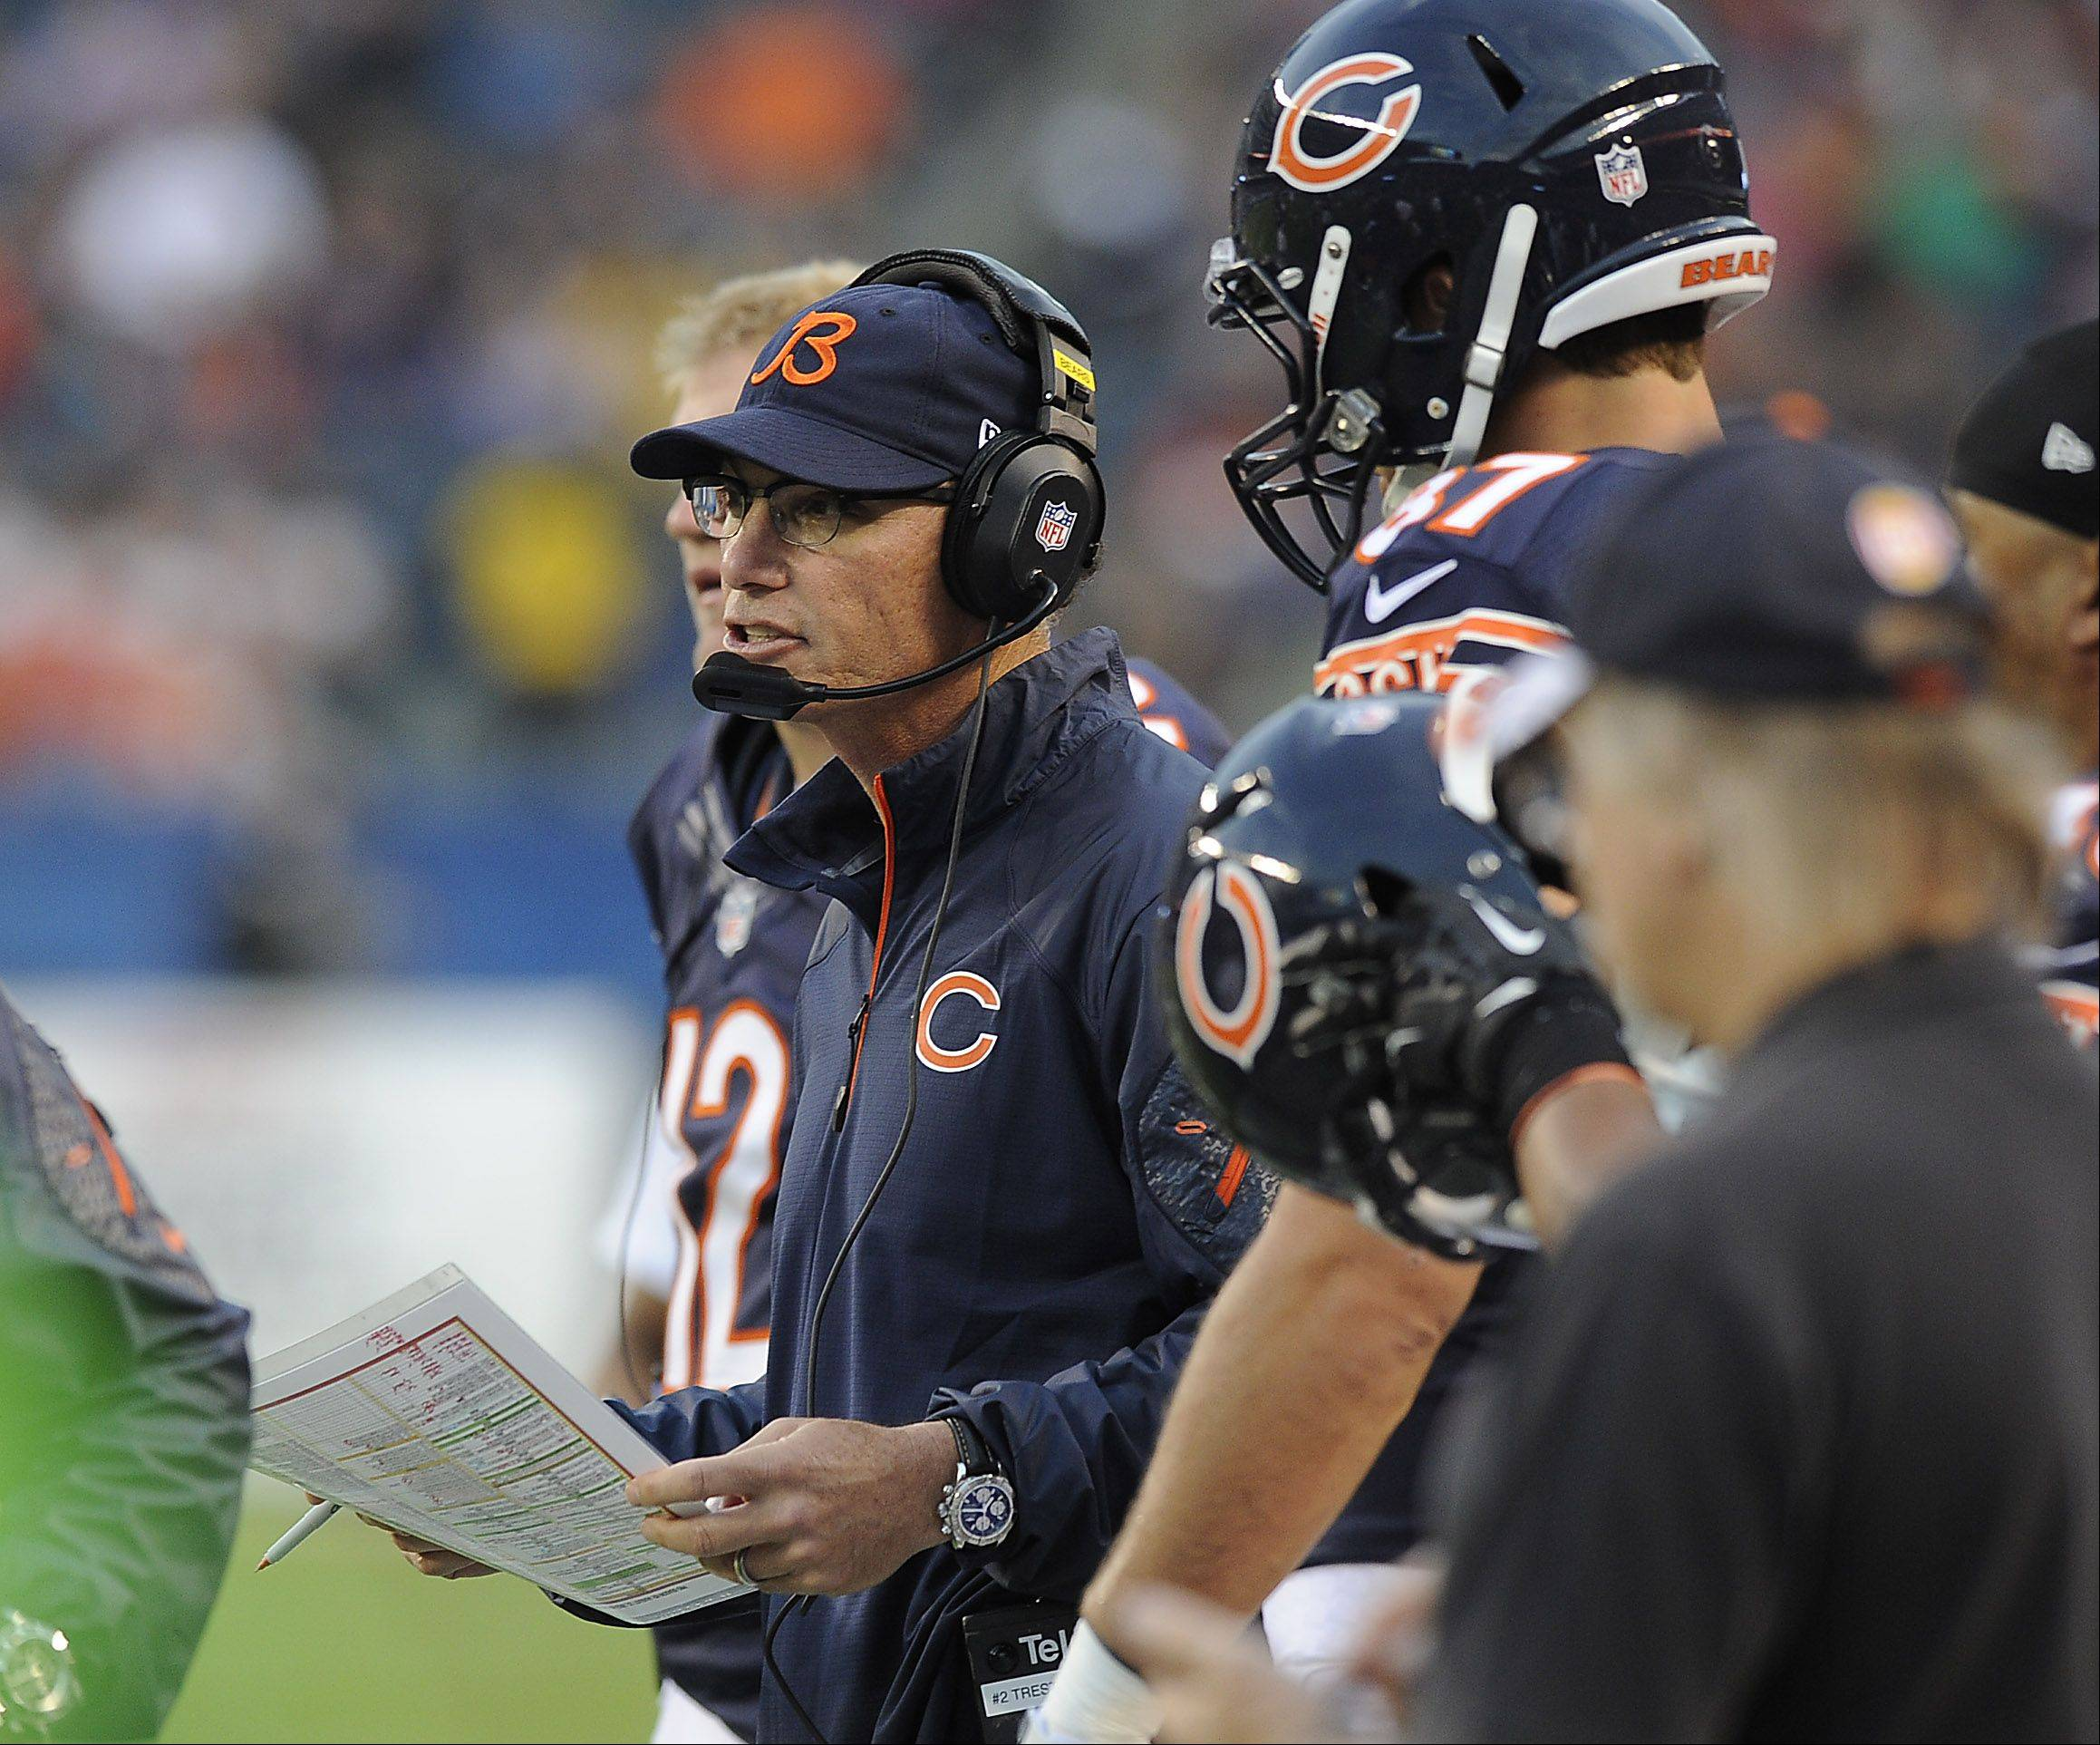 The Bears� Marc Trestman won�t be reflecting too much Sunday on his first game as an NFL head coach because he knows he has a job to do.